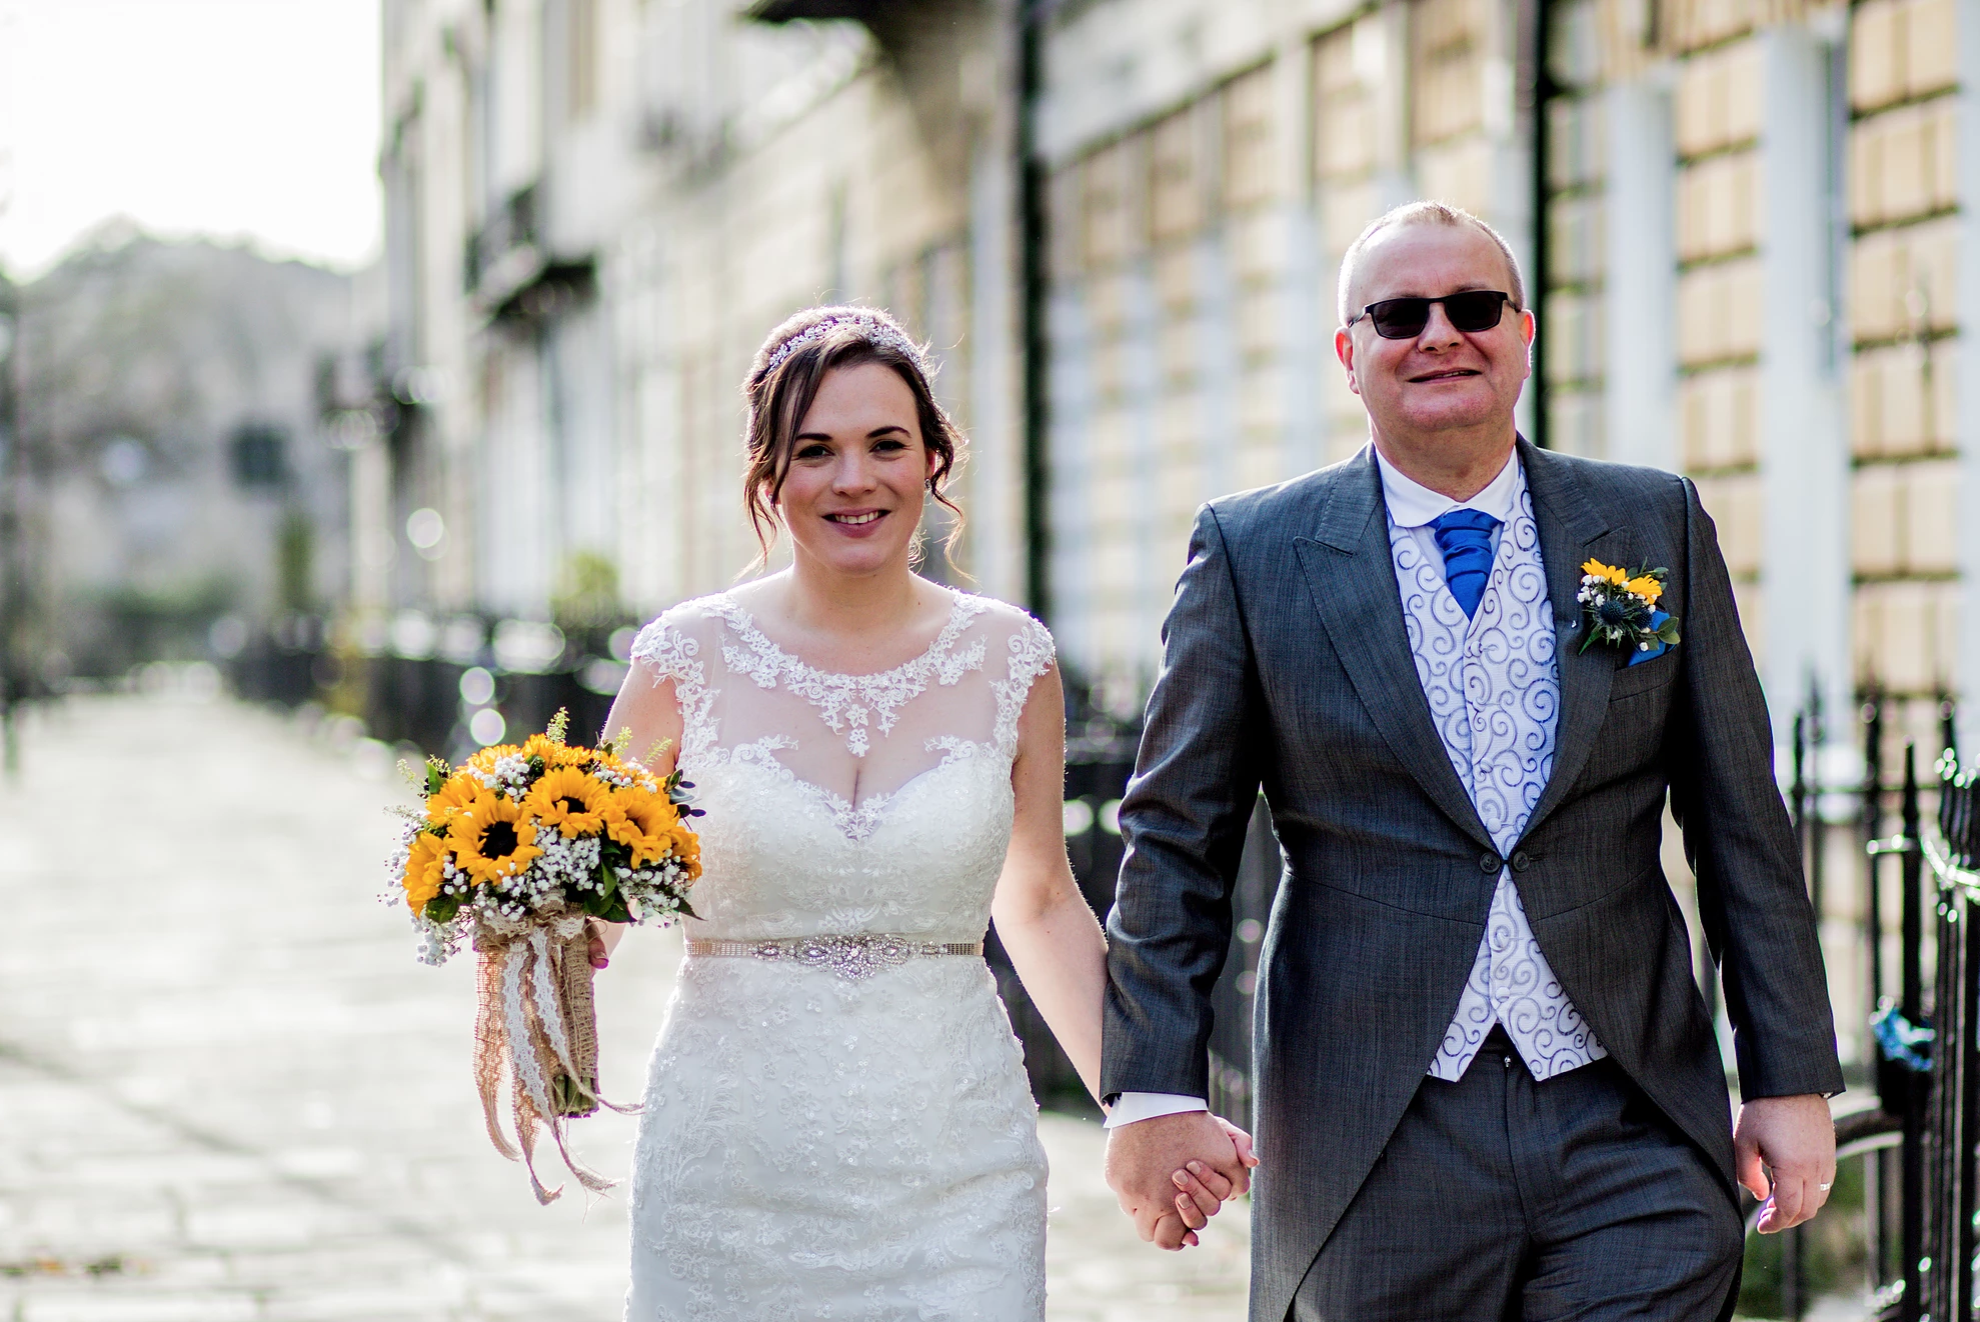 Wedding Picture Locations in Bath - Locations close to Bath Function Rooms